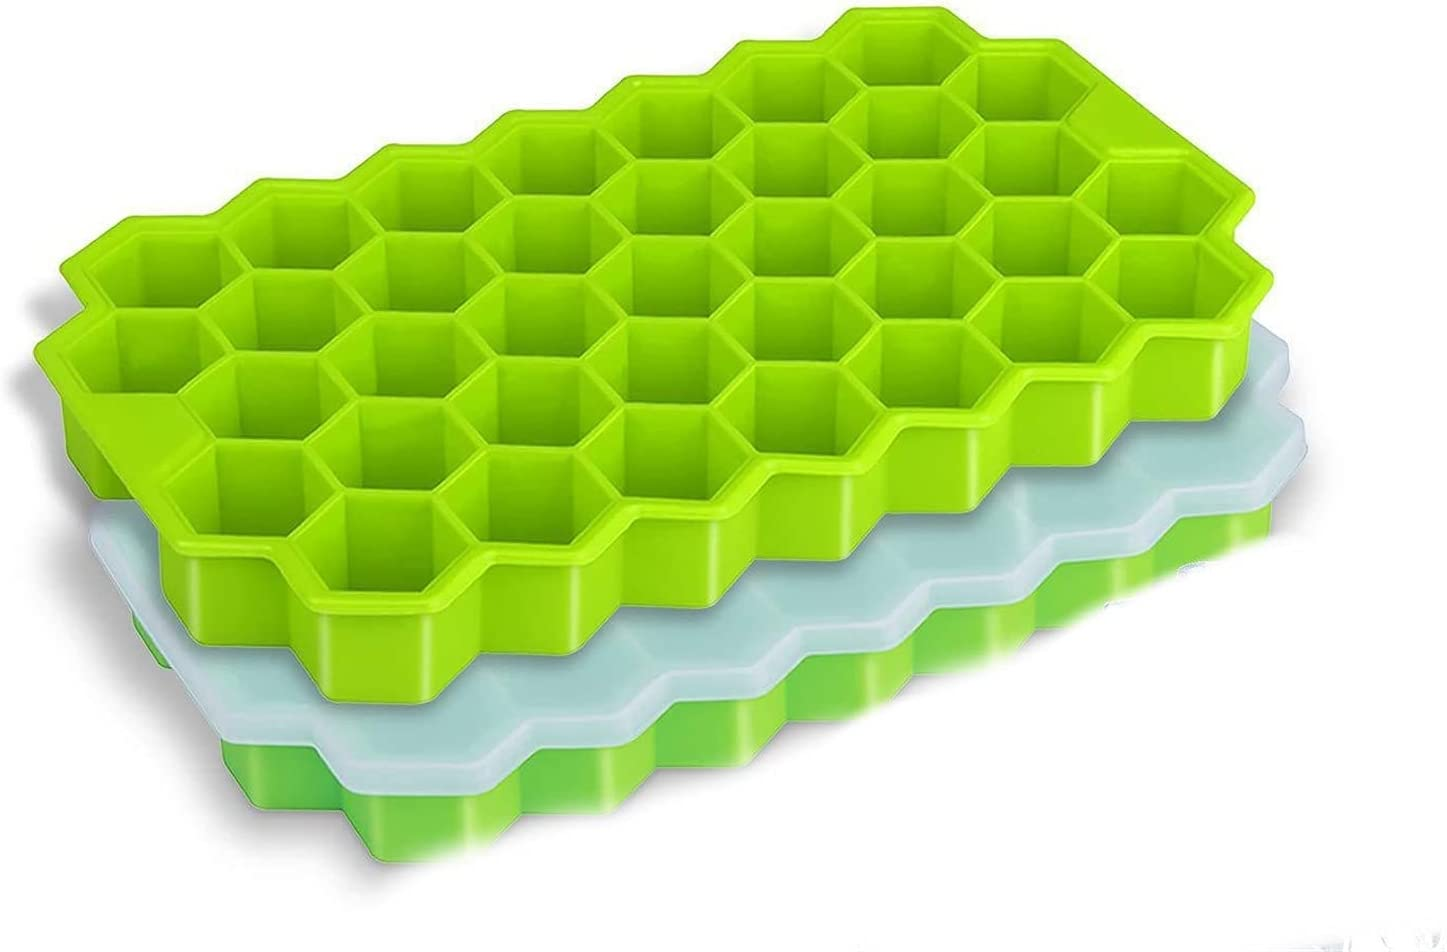 Japan Maker New 37 Grids Ice Cube Tray Honeycomb Tampa Mall with Removalbe Molds L